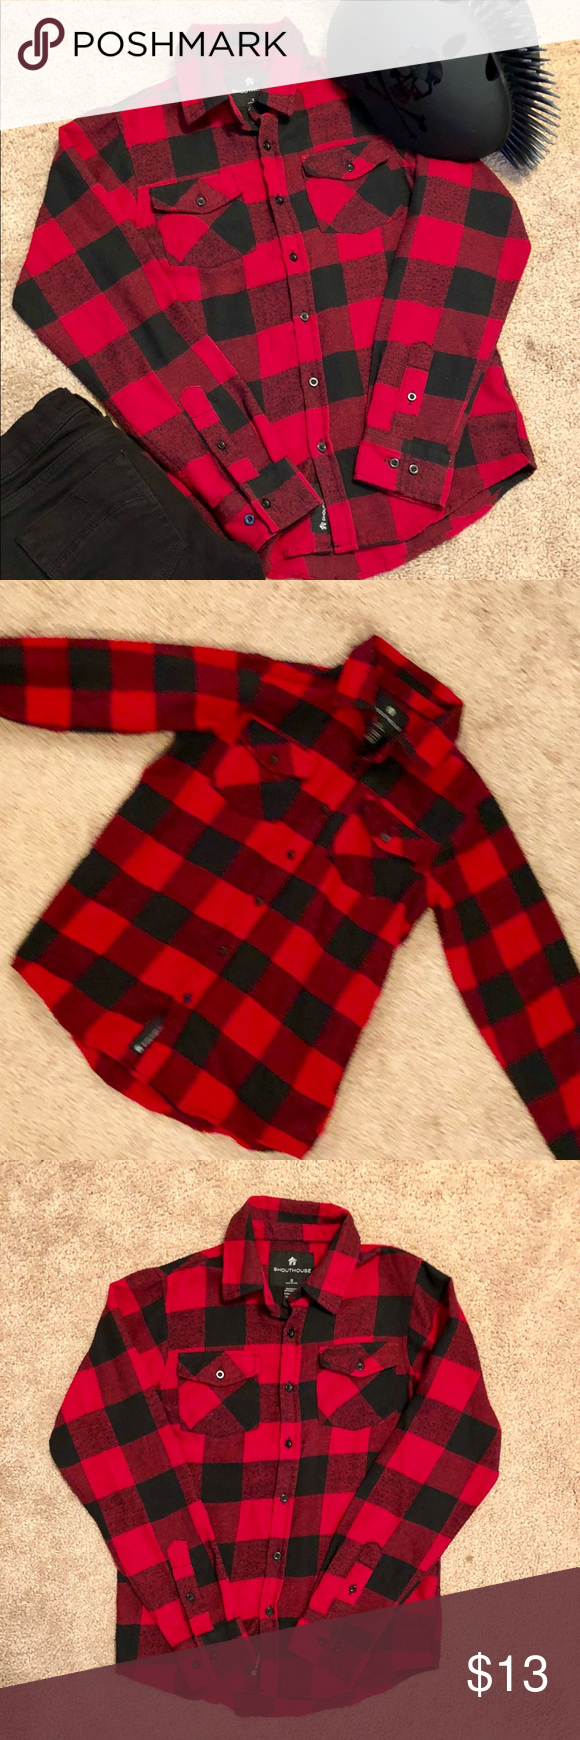 Red flannel unbuttoned  Boys NWOT Checkered Shouthouse Skater Flannel